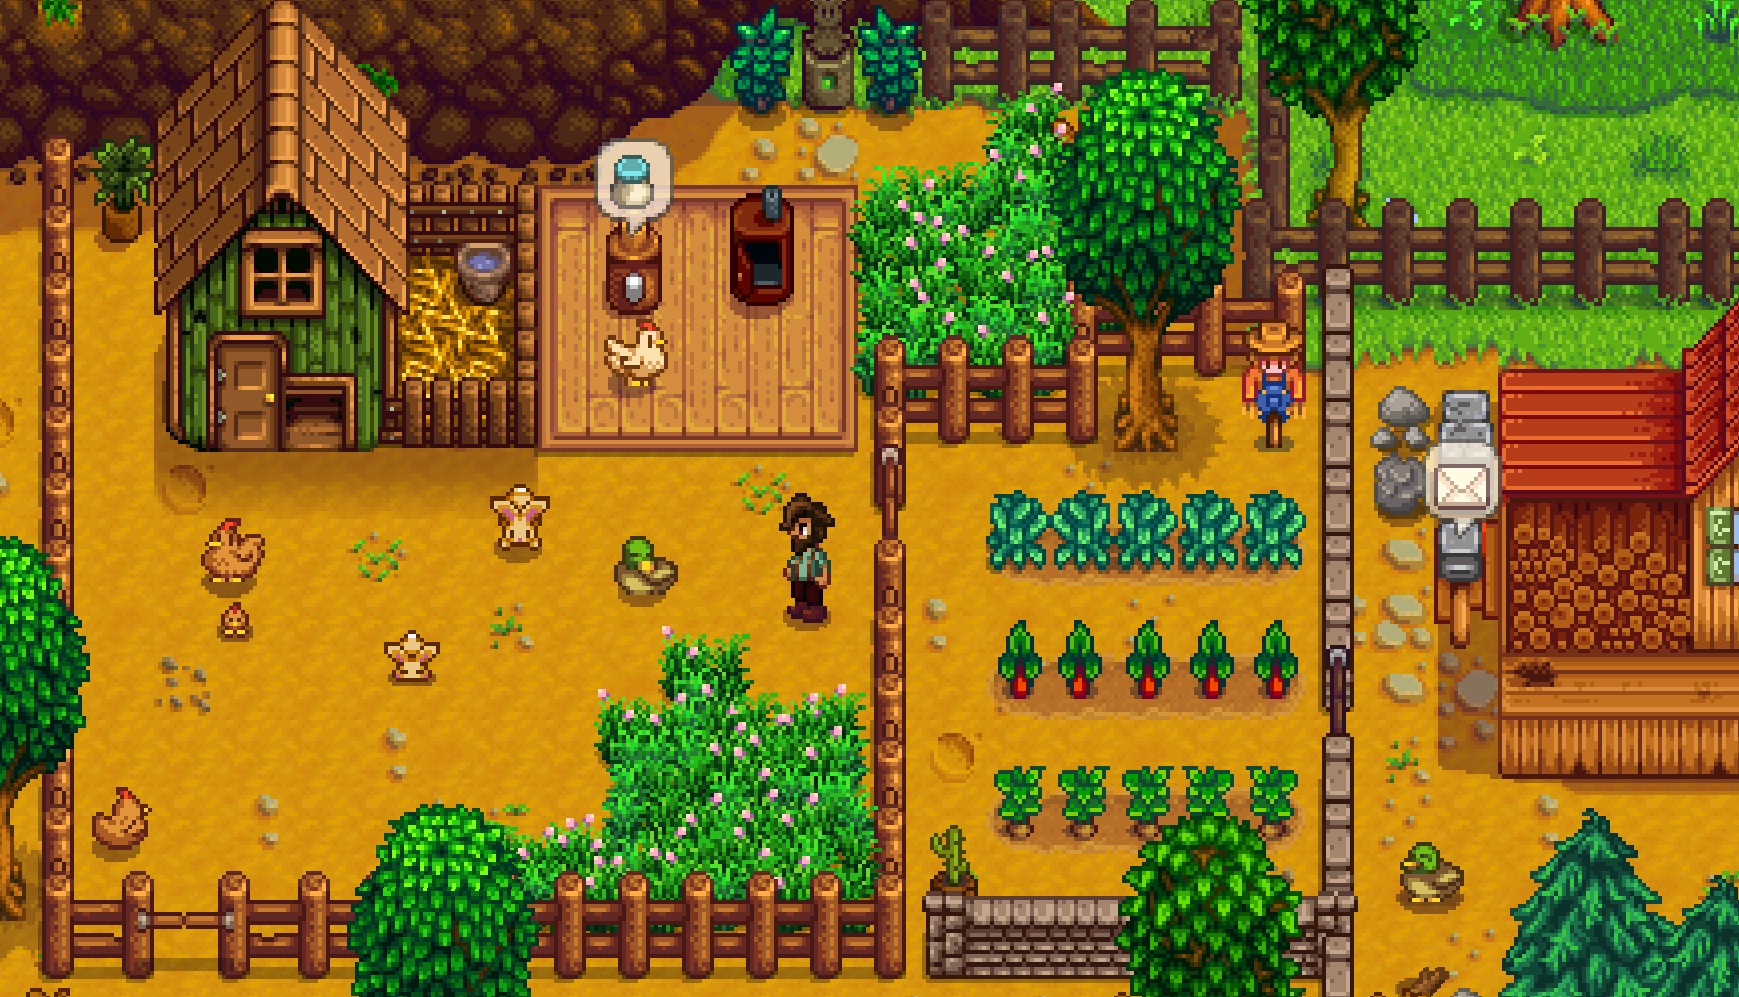 Stardew Valley guide for beginners